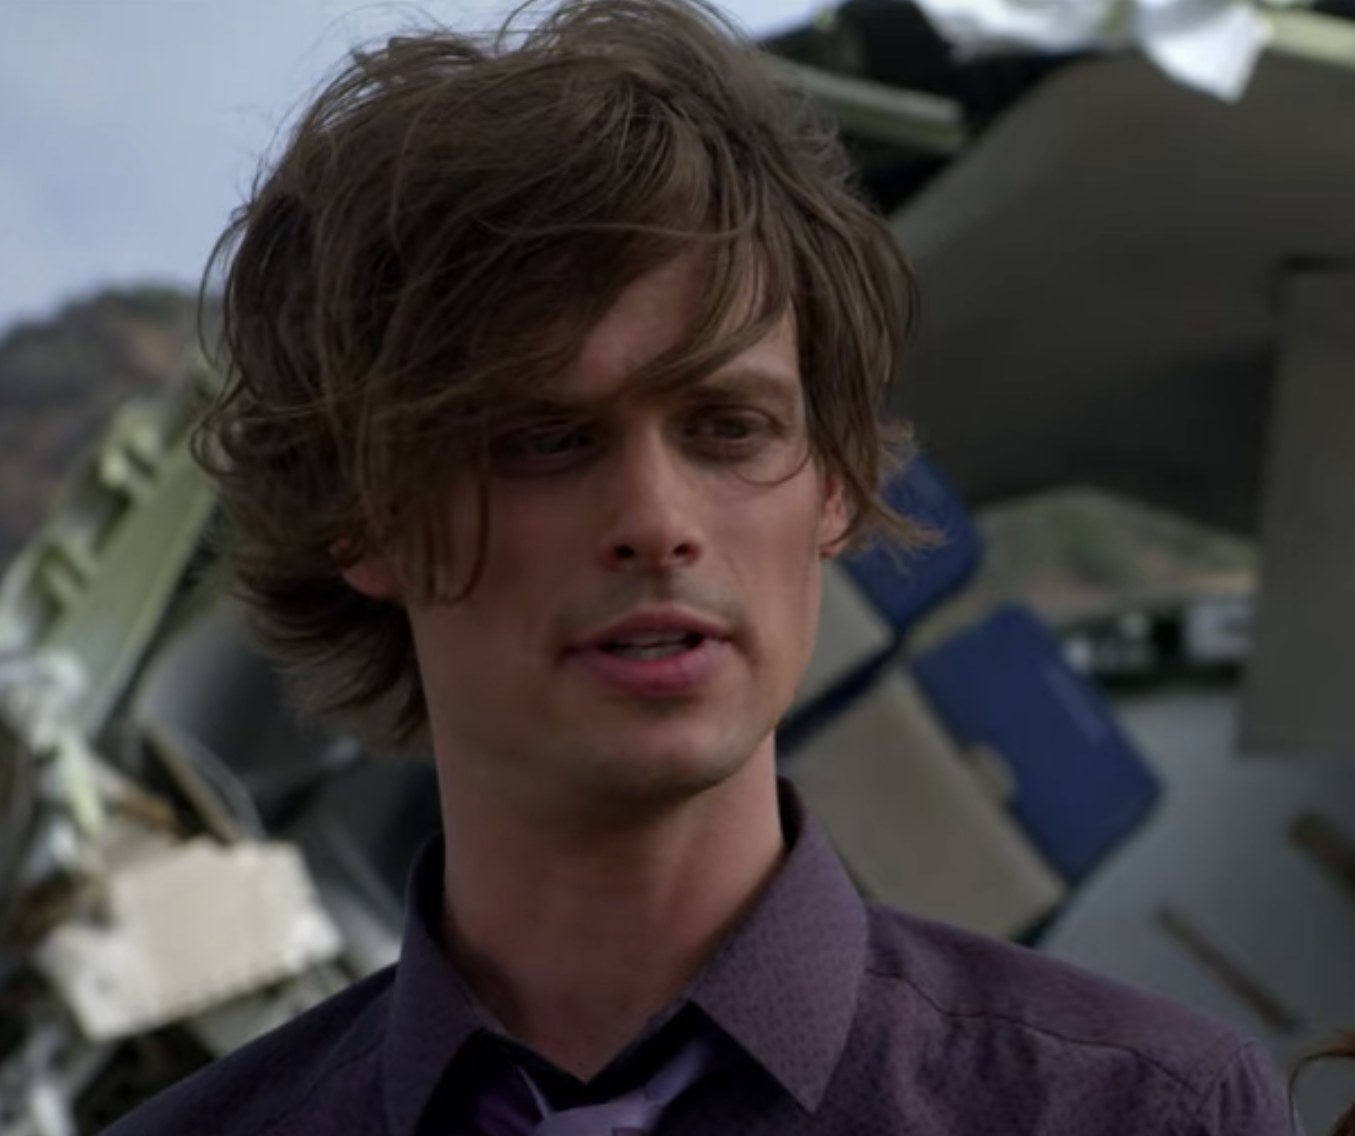 Spencer Reid from Criminal Minds looking at a person